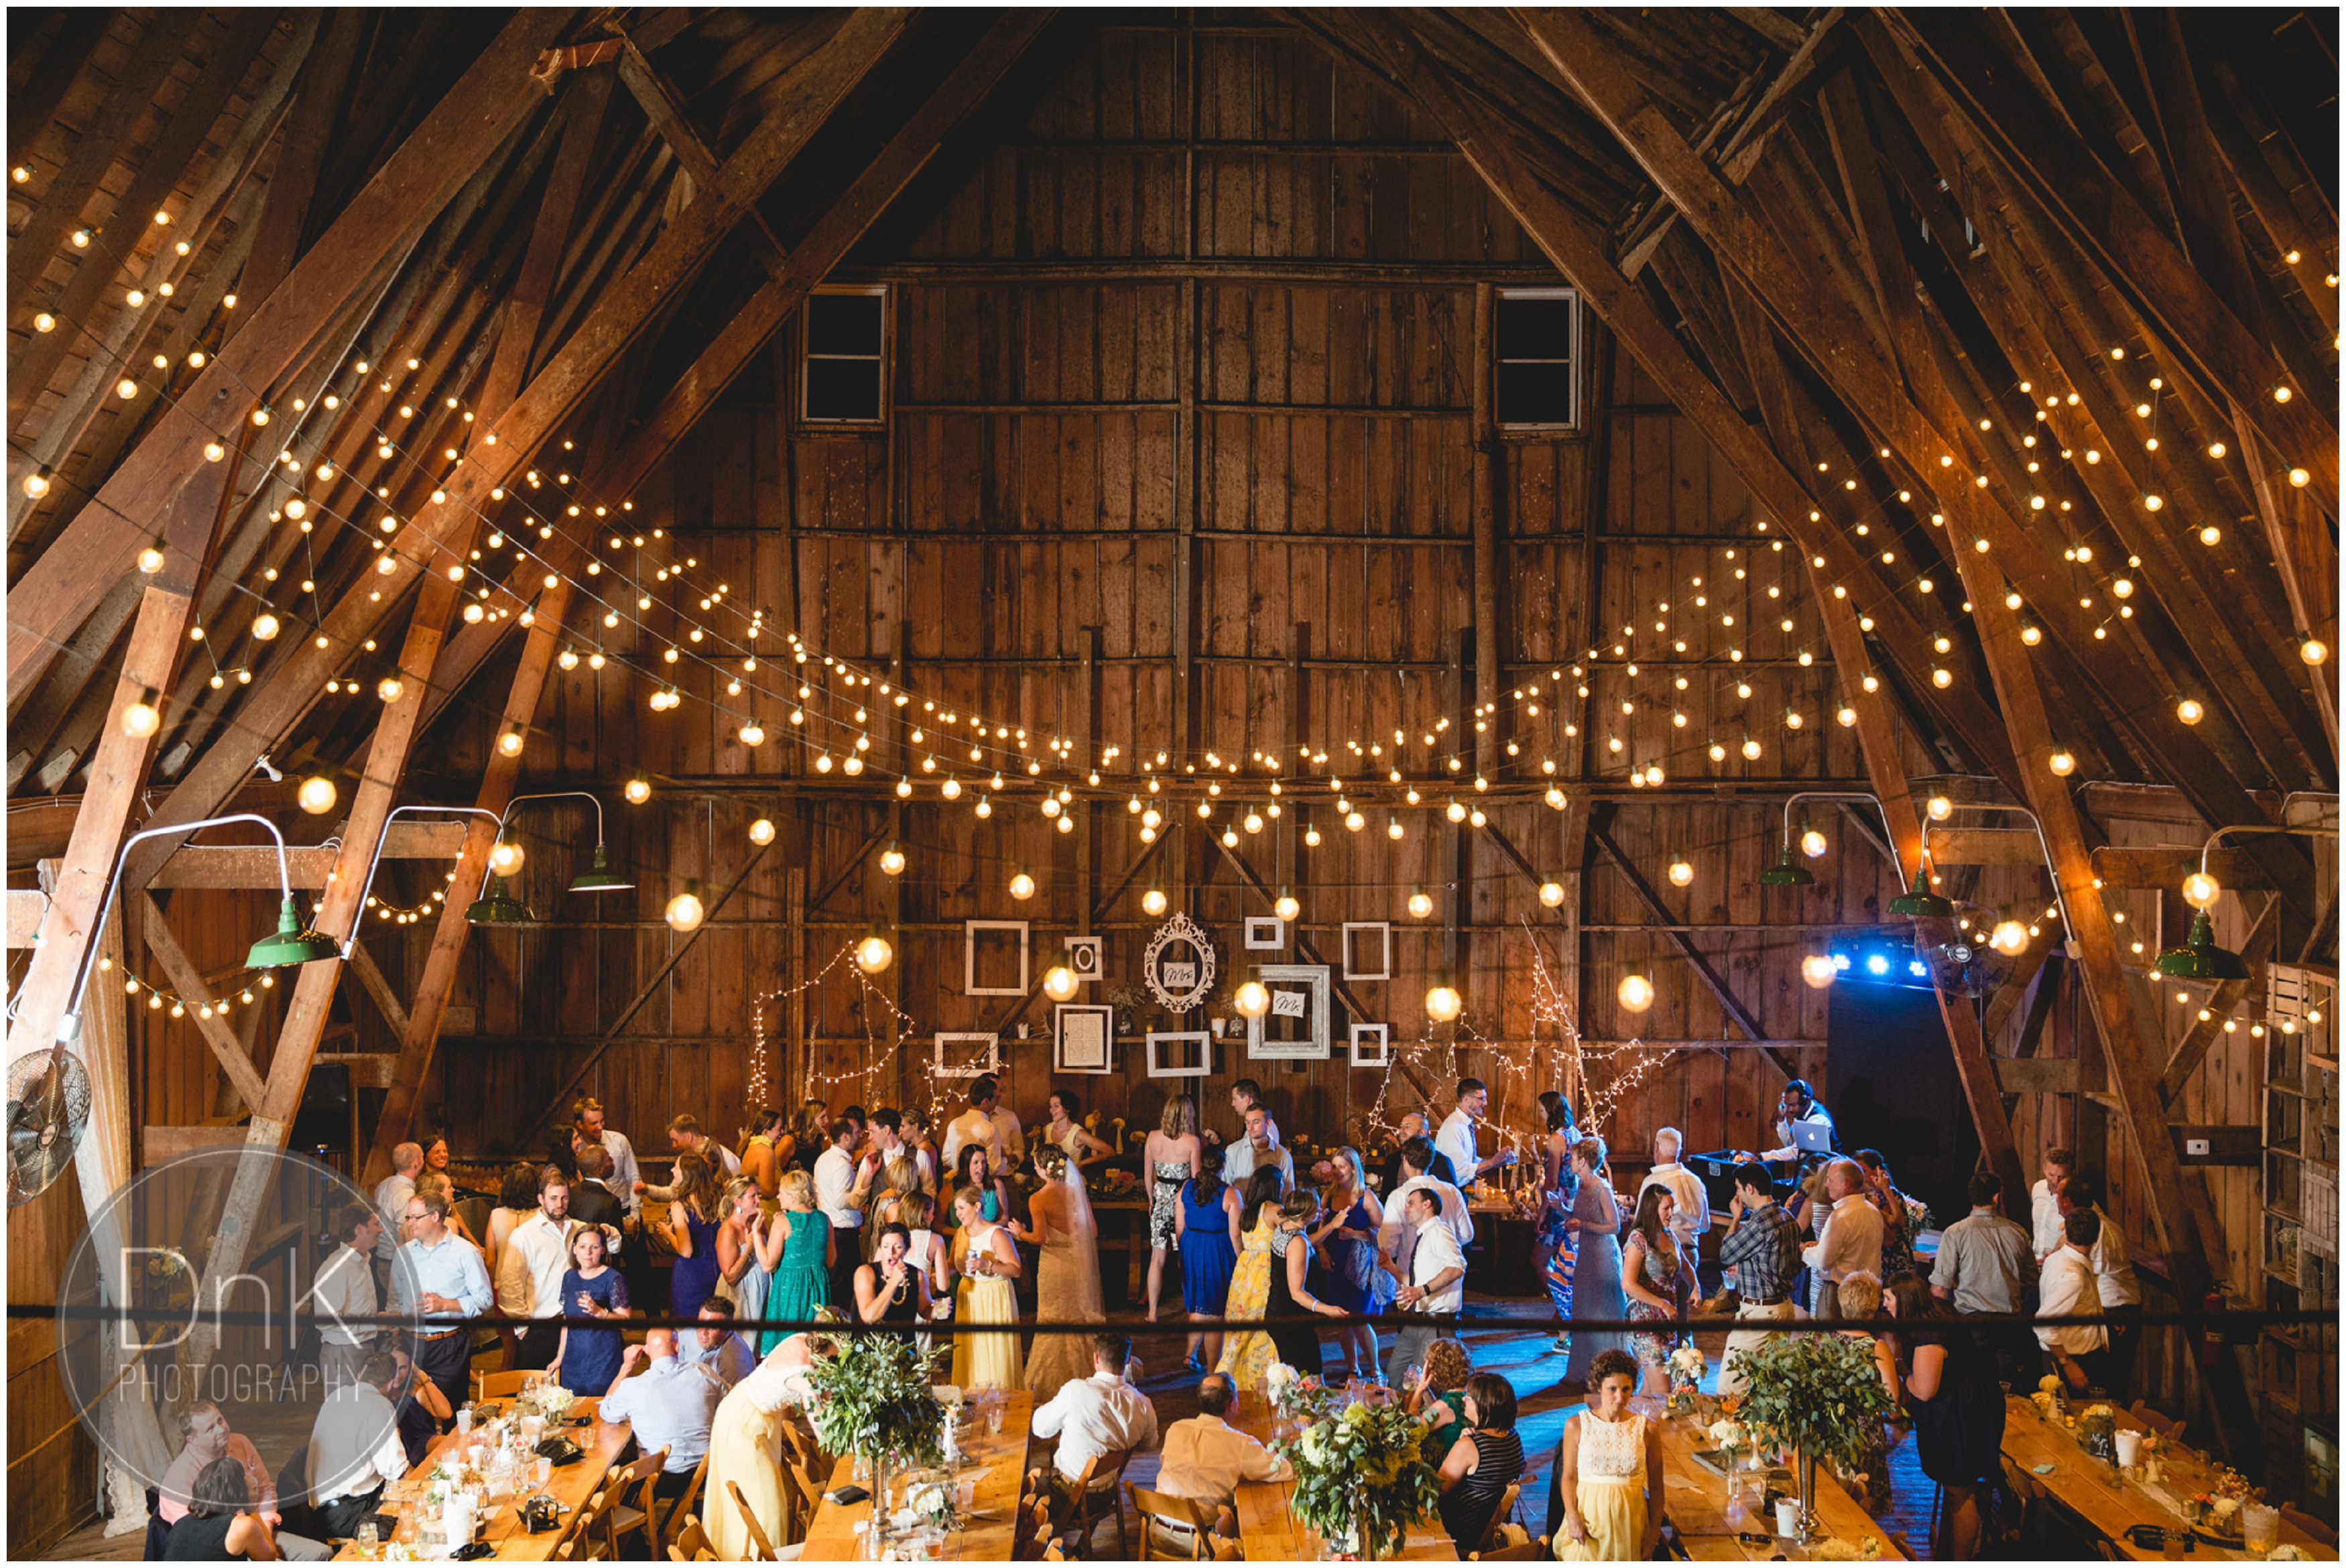 61 - Dellwood Barn Wedding Reception